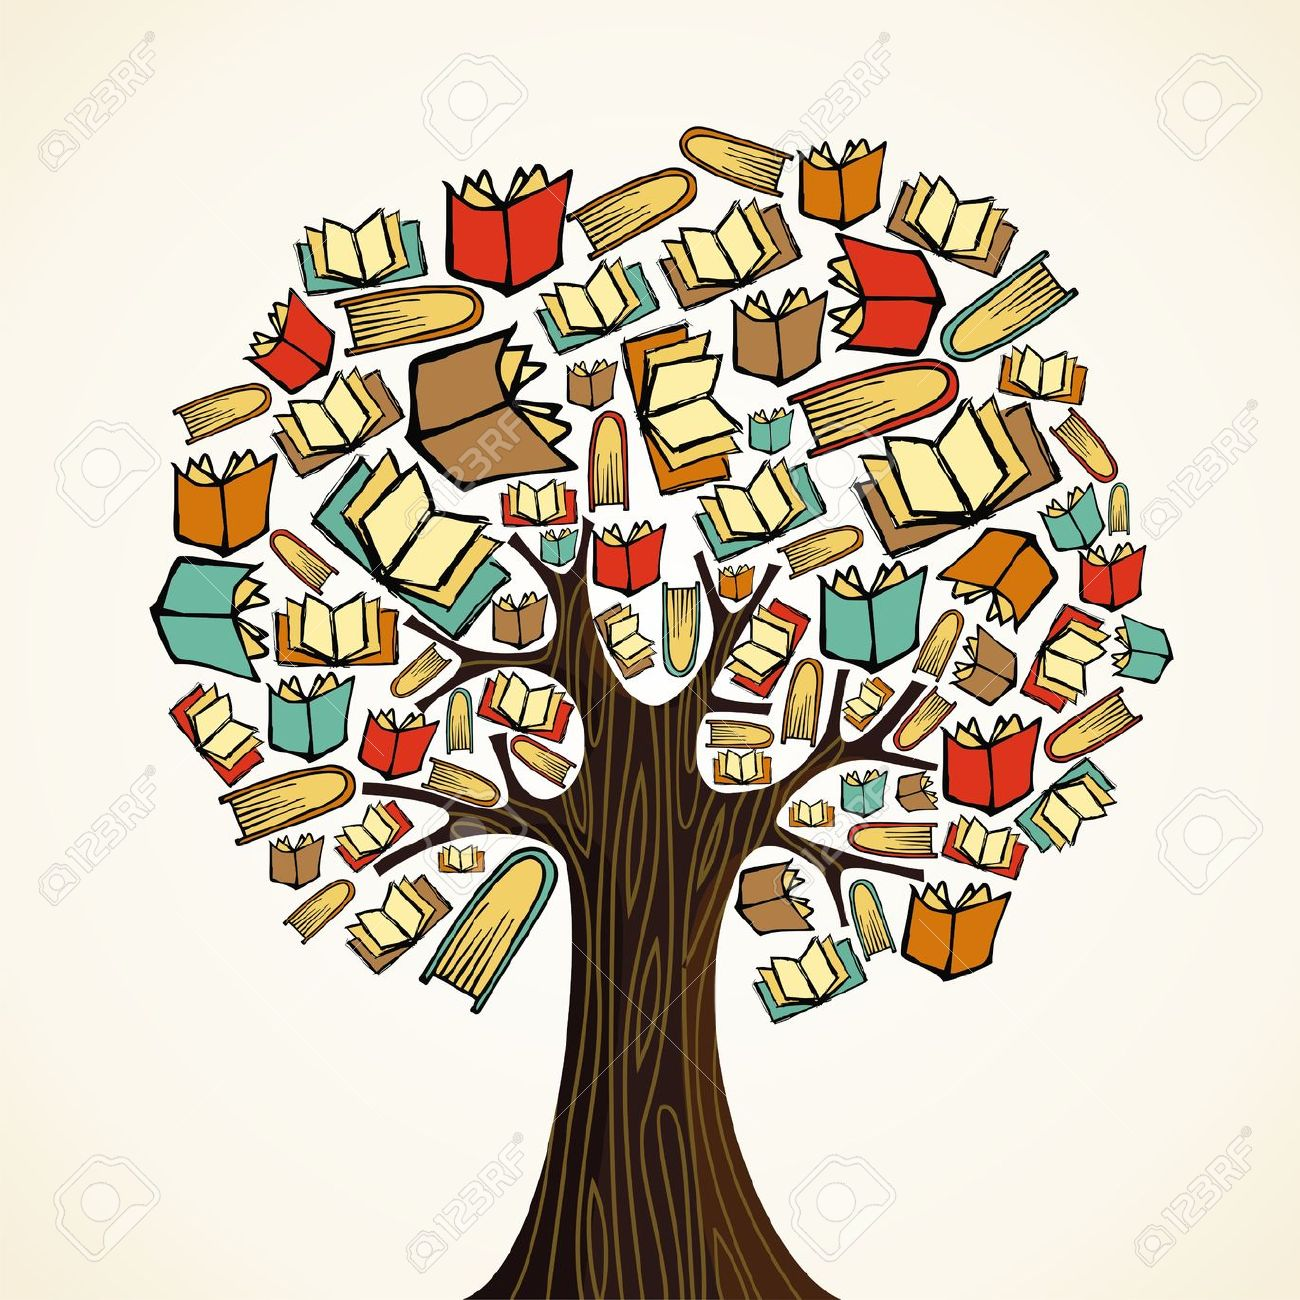 Knowledge clipart graphic Clipart Tree Clipart Download Knowledge